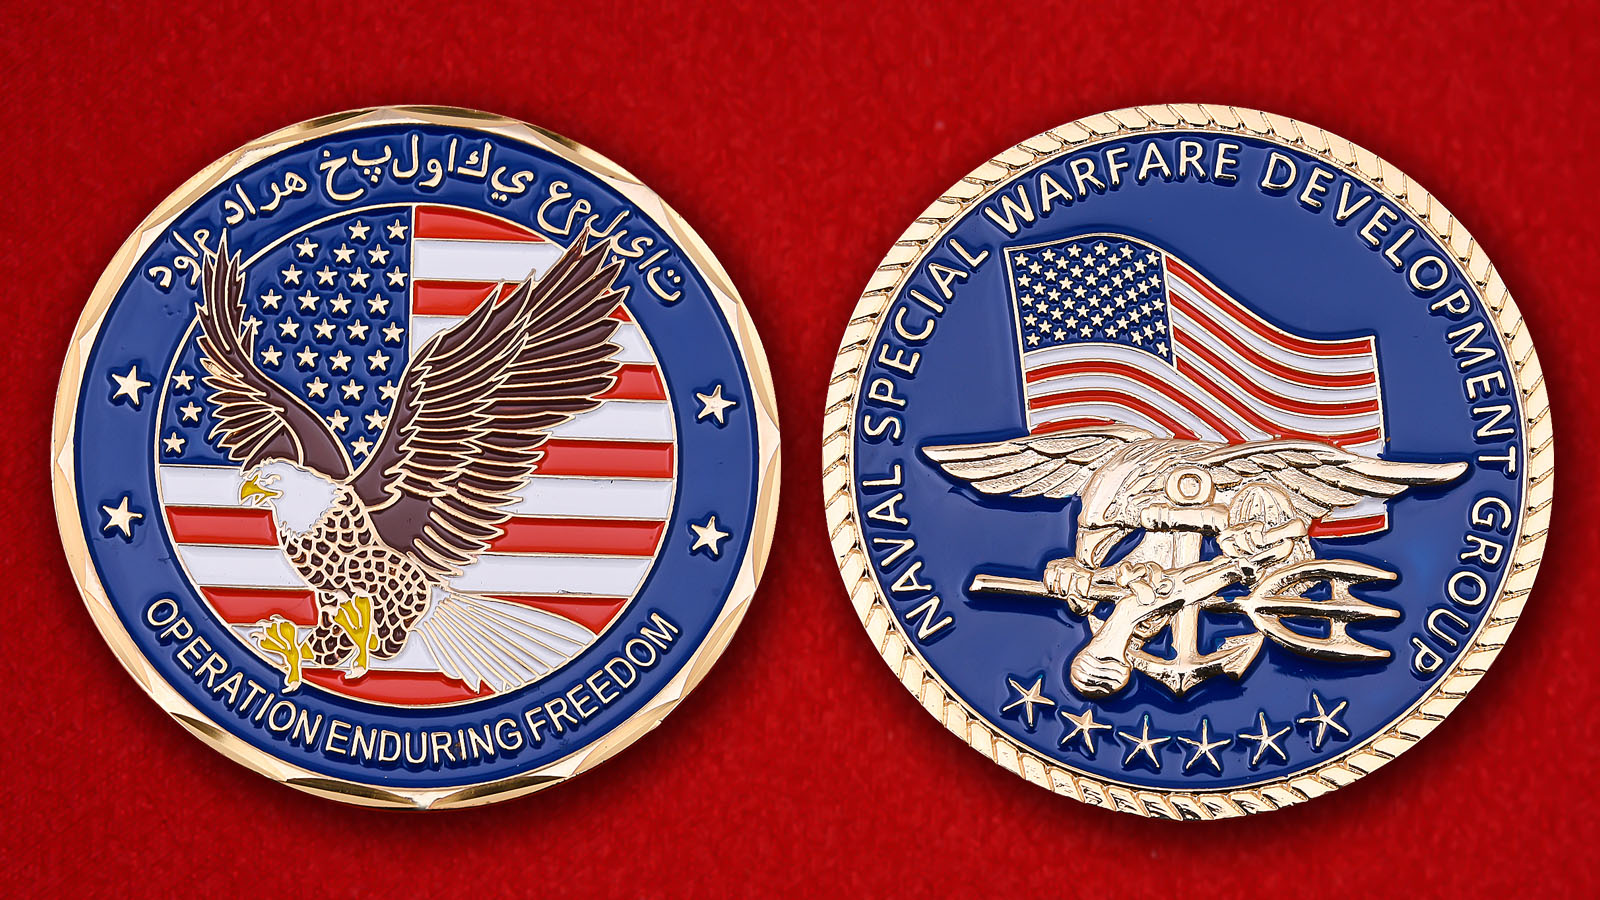 USN Naval Special Warfare Development Group Operation Enduring Freedom Challenge Coin